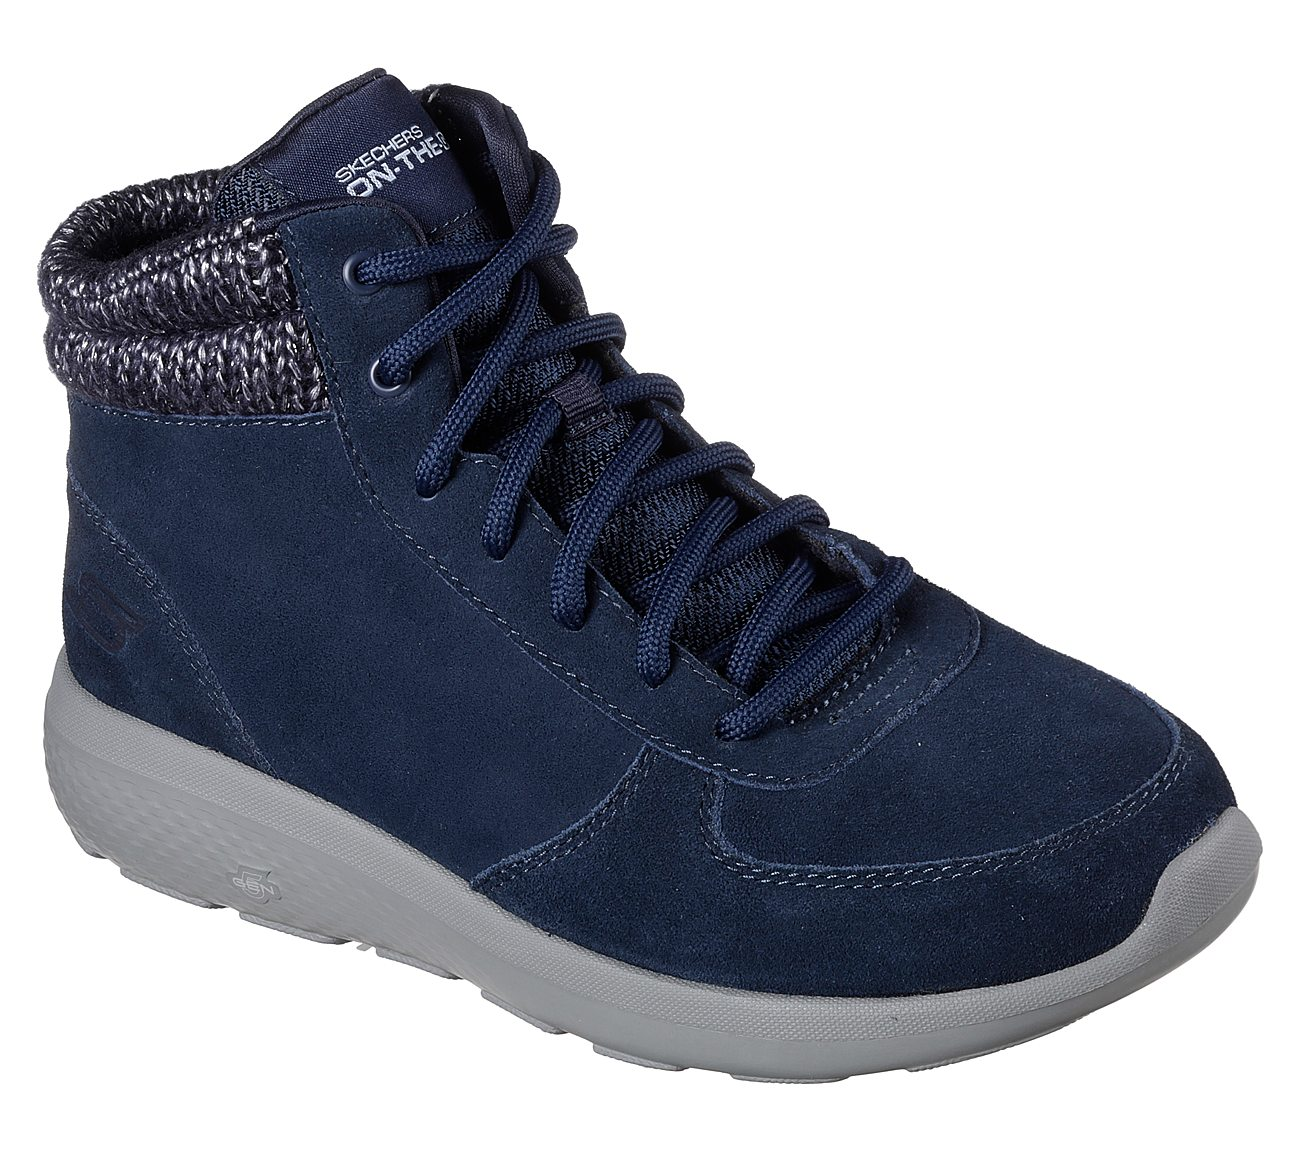 North Ice Skechers Performance Shoes